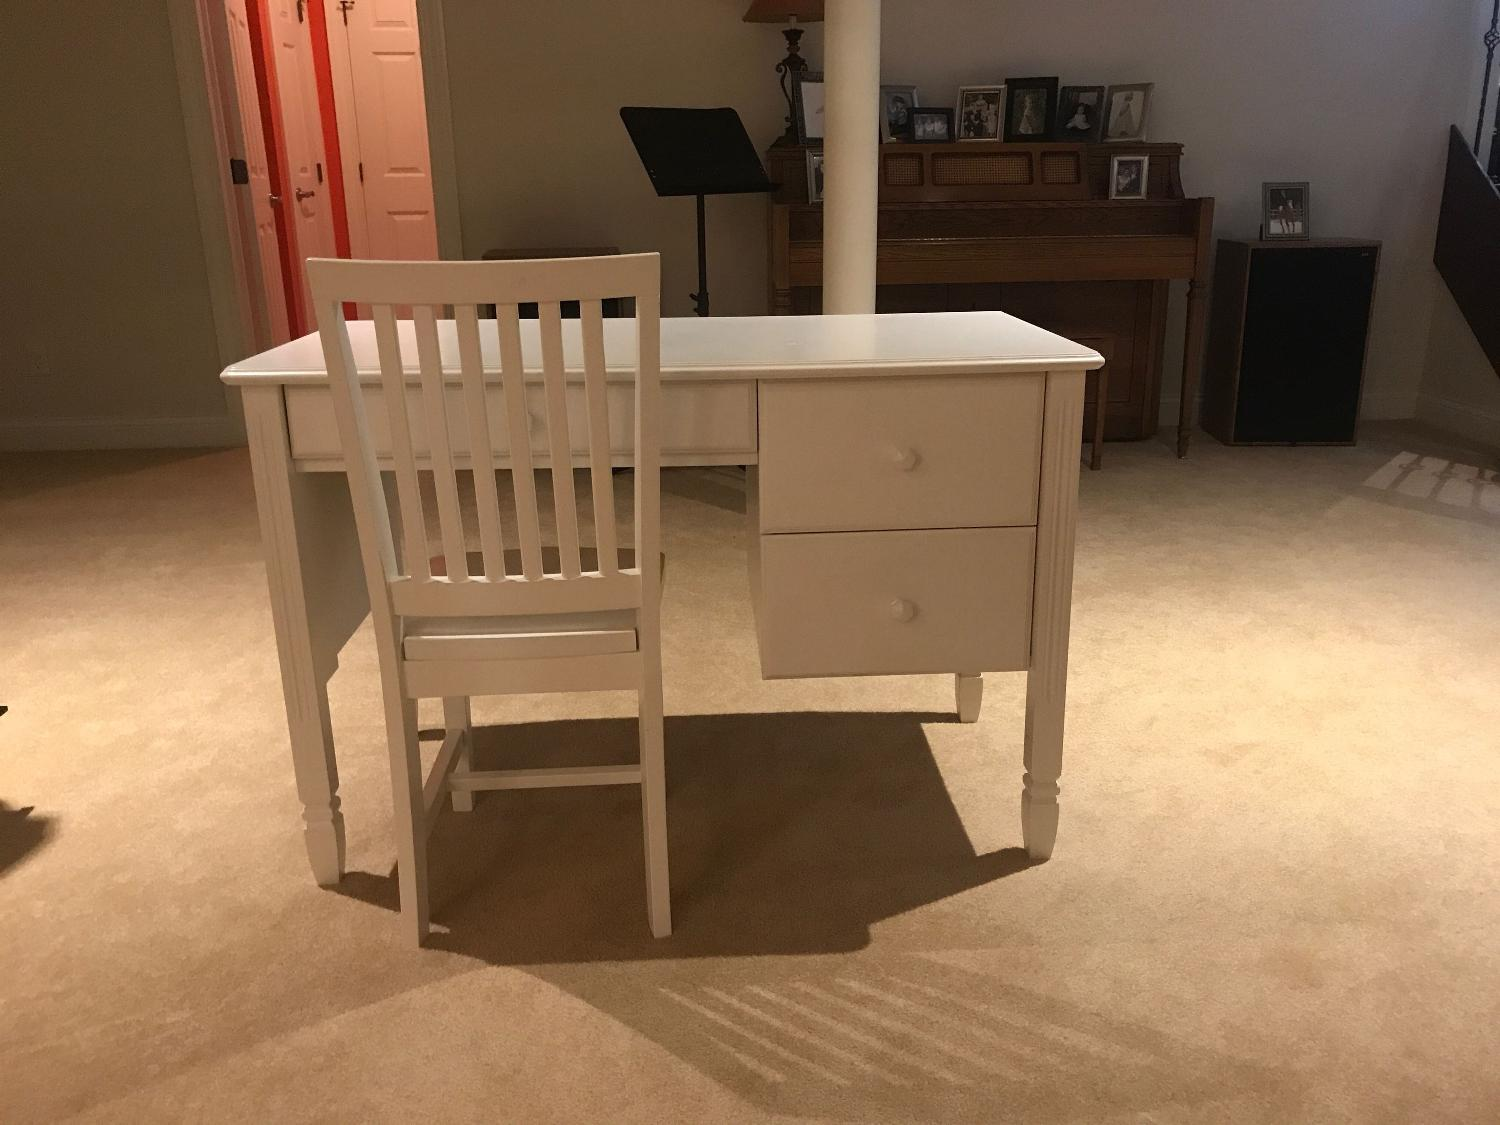 Best Pottery Barn Kids Desk And Chair For Sale In Morton Illinois For 2020